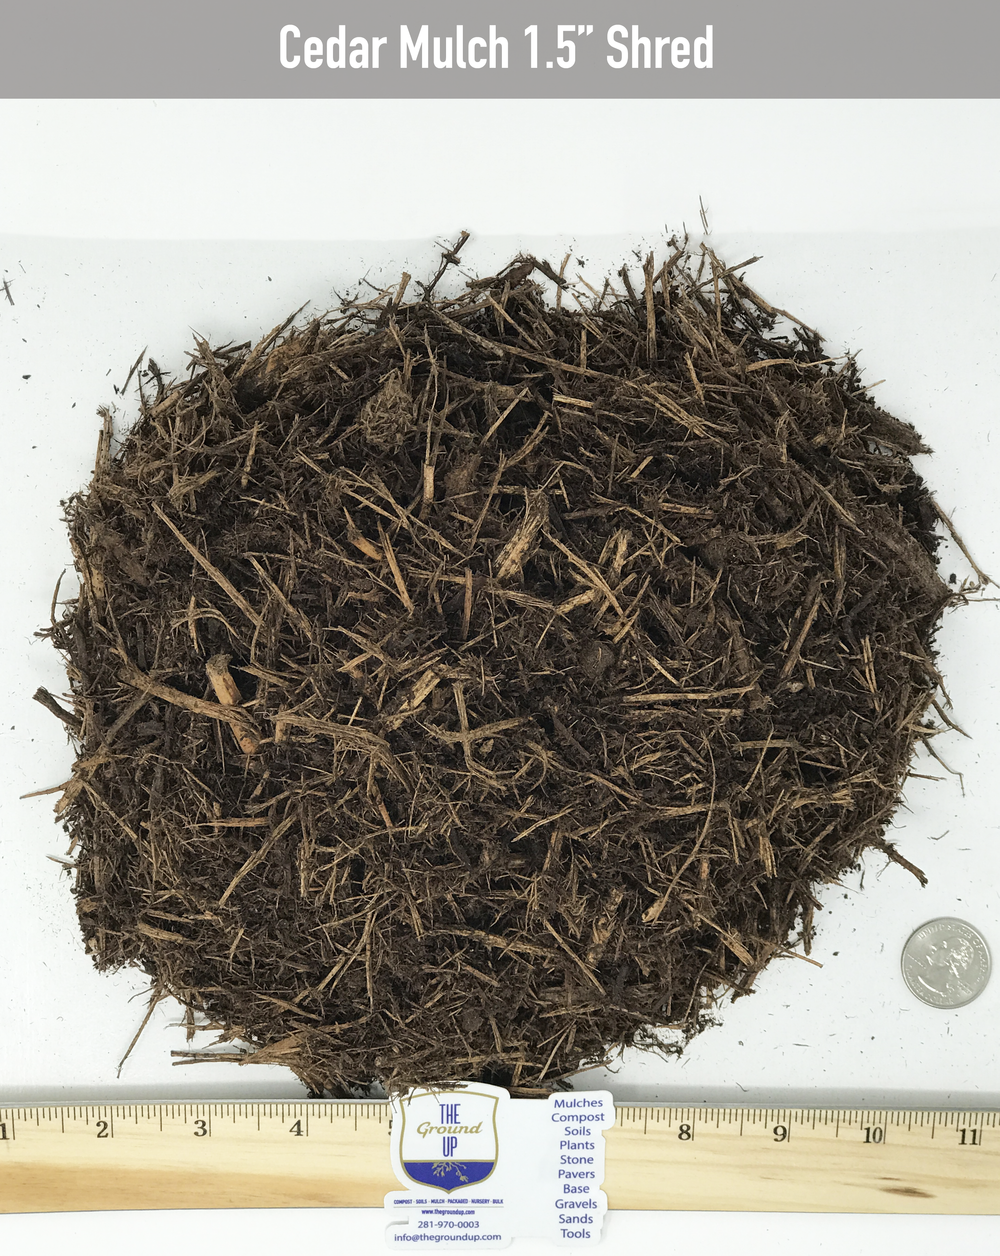 Cedar Mulch - Double Shredded     $38/cuyd  Great as an insect repellent. This is the prettiest Cedar Mulch you will ever use on your landscapes.